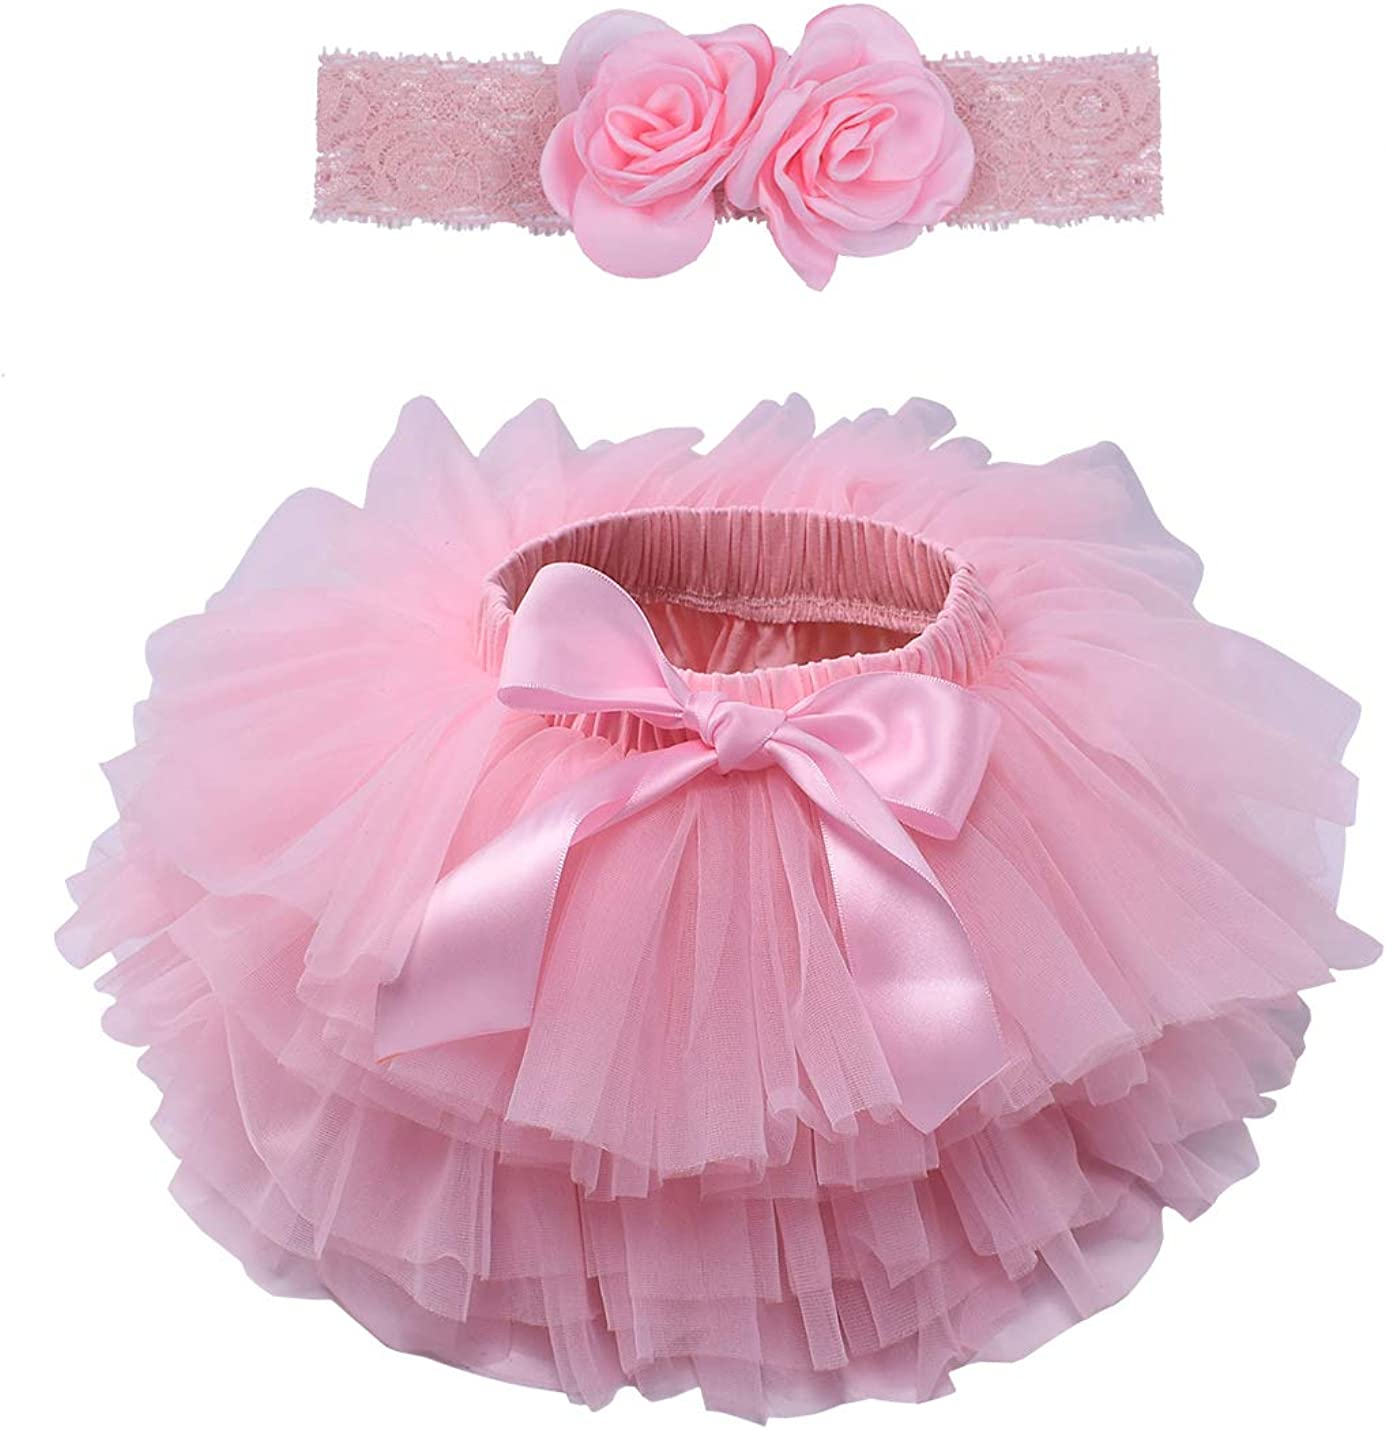 Baby Girls Rainbow Ruffle Bottom Tutu Bloomers Toddler Tulle Skirt and Headband Set 0 to 24 Months